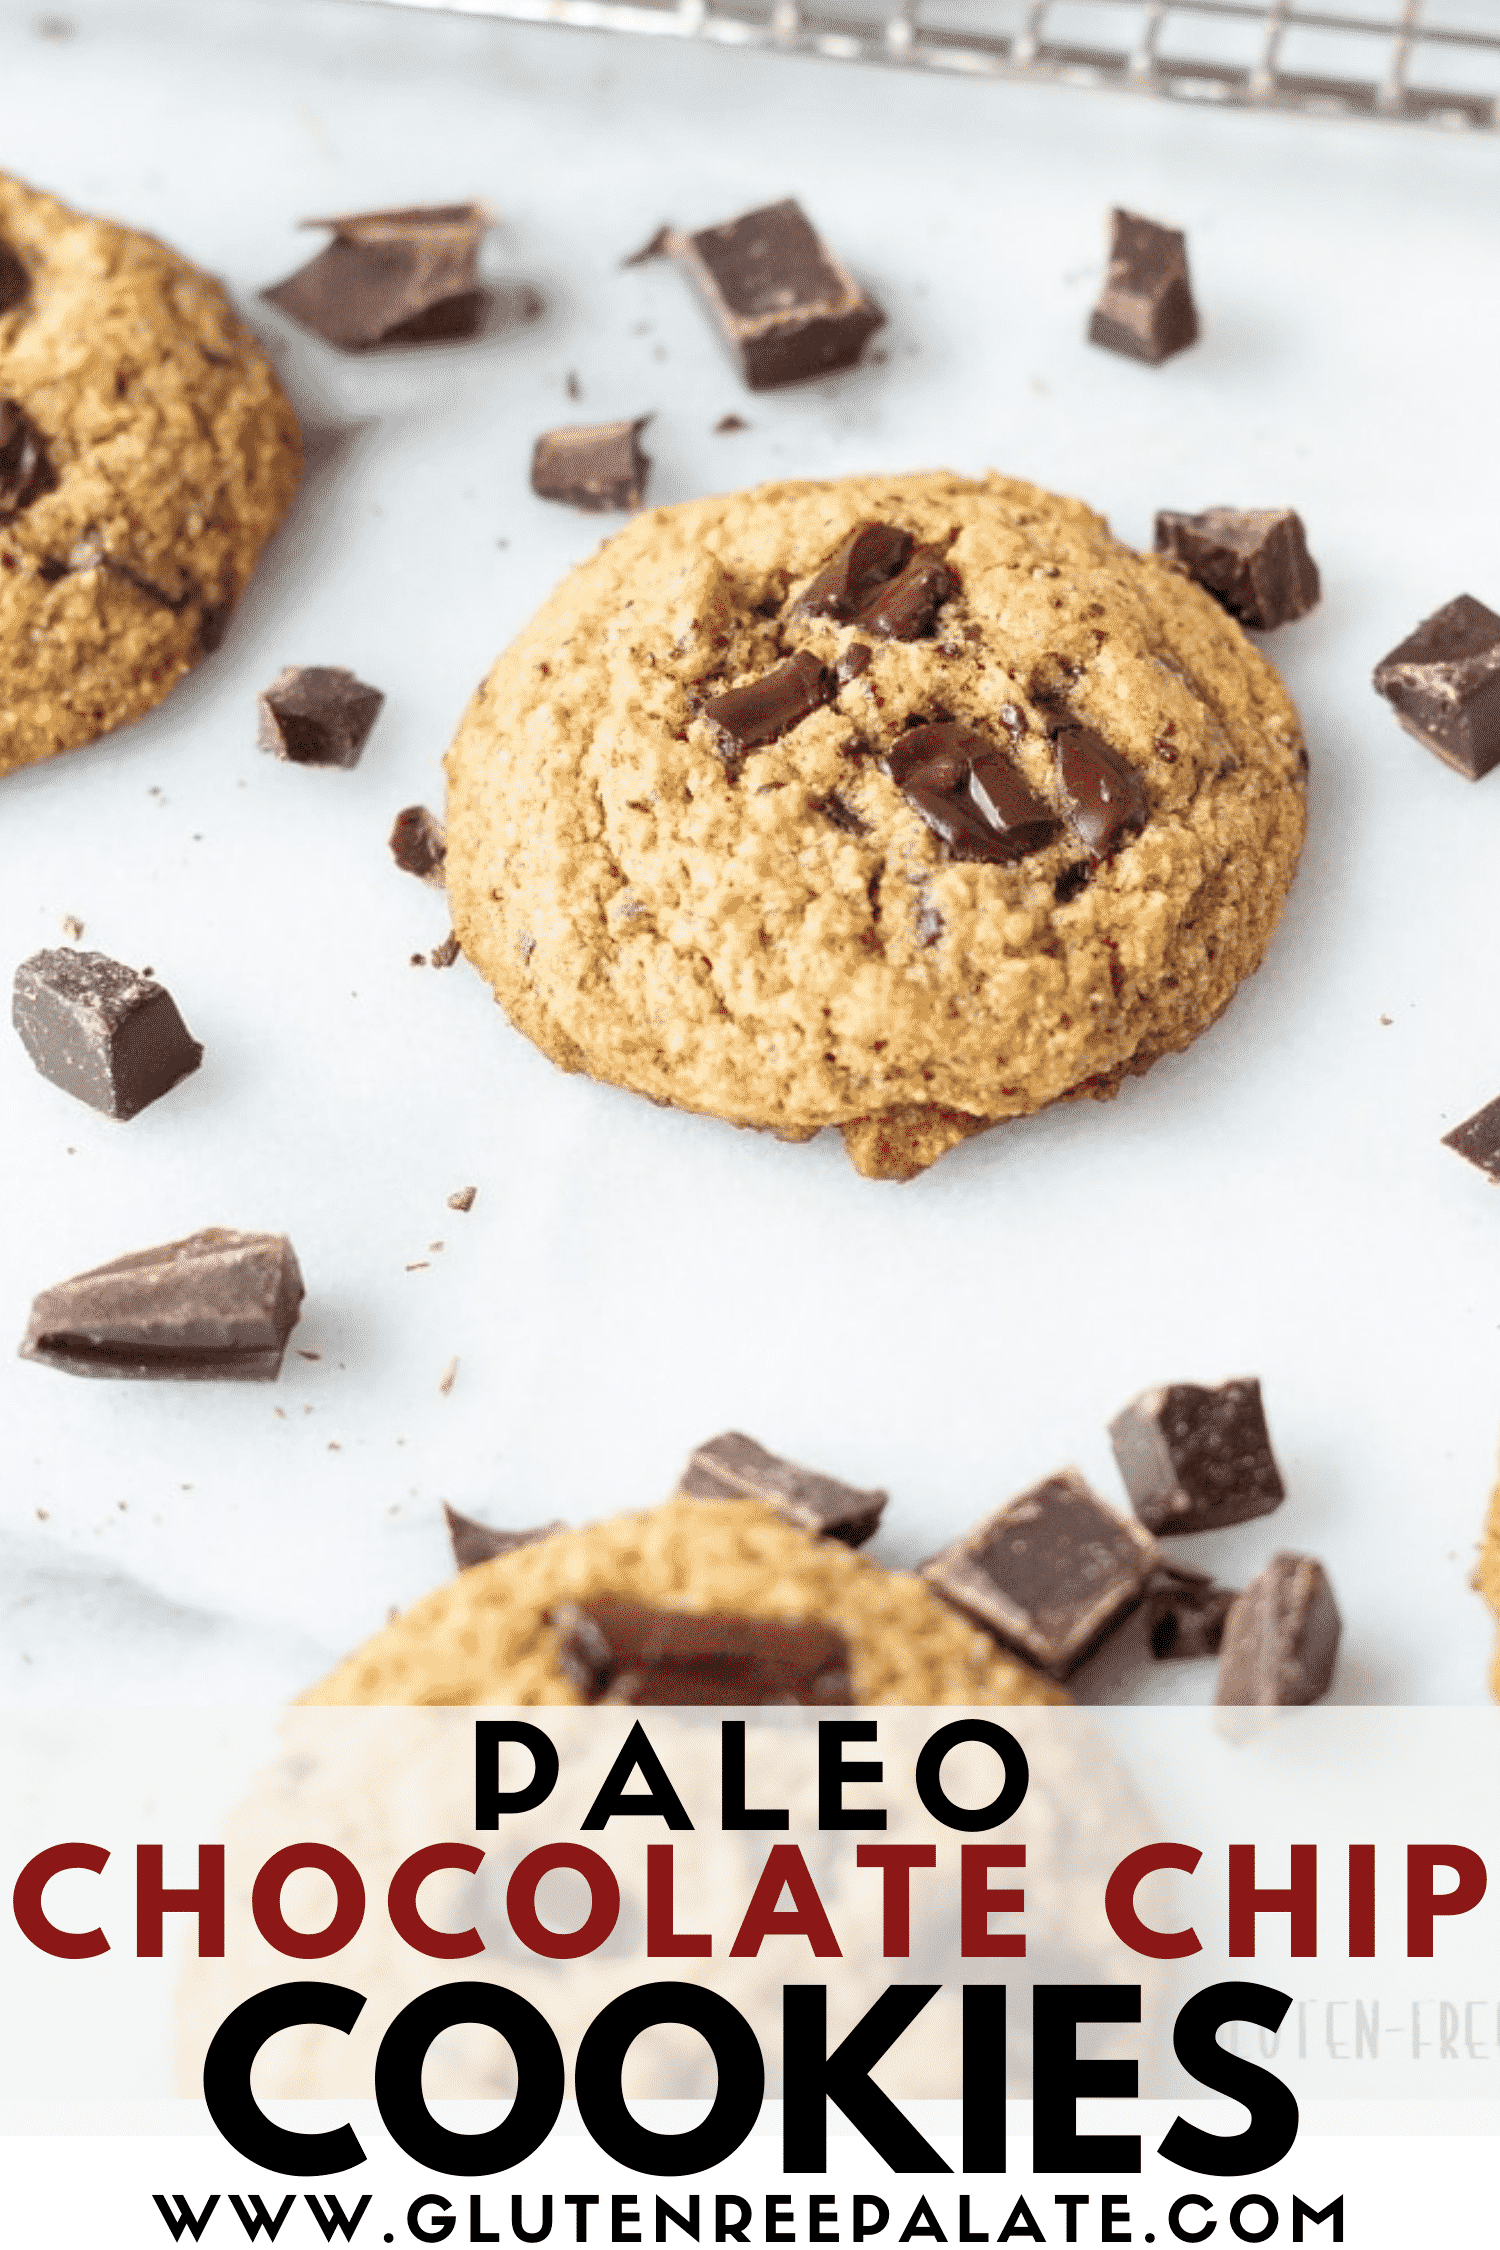 image of paleo chocolate chip cookies with text overlay